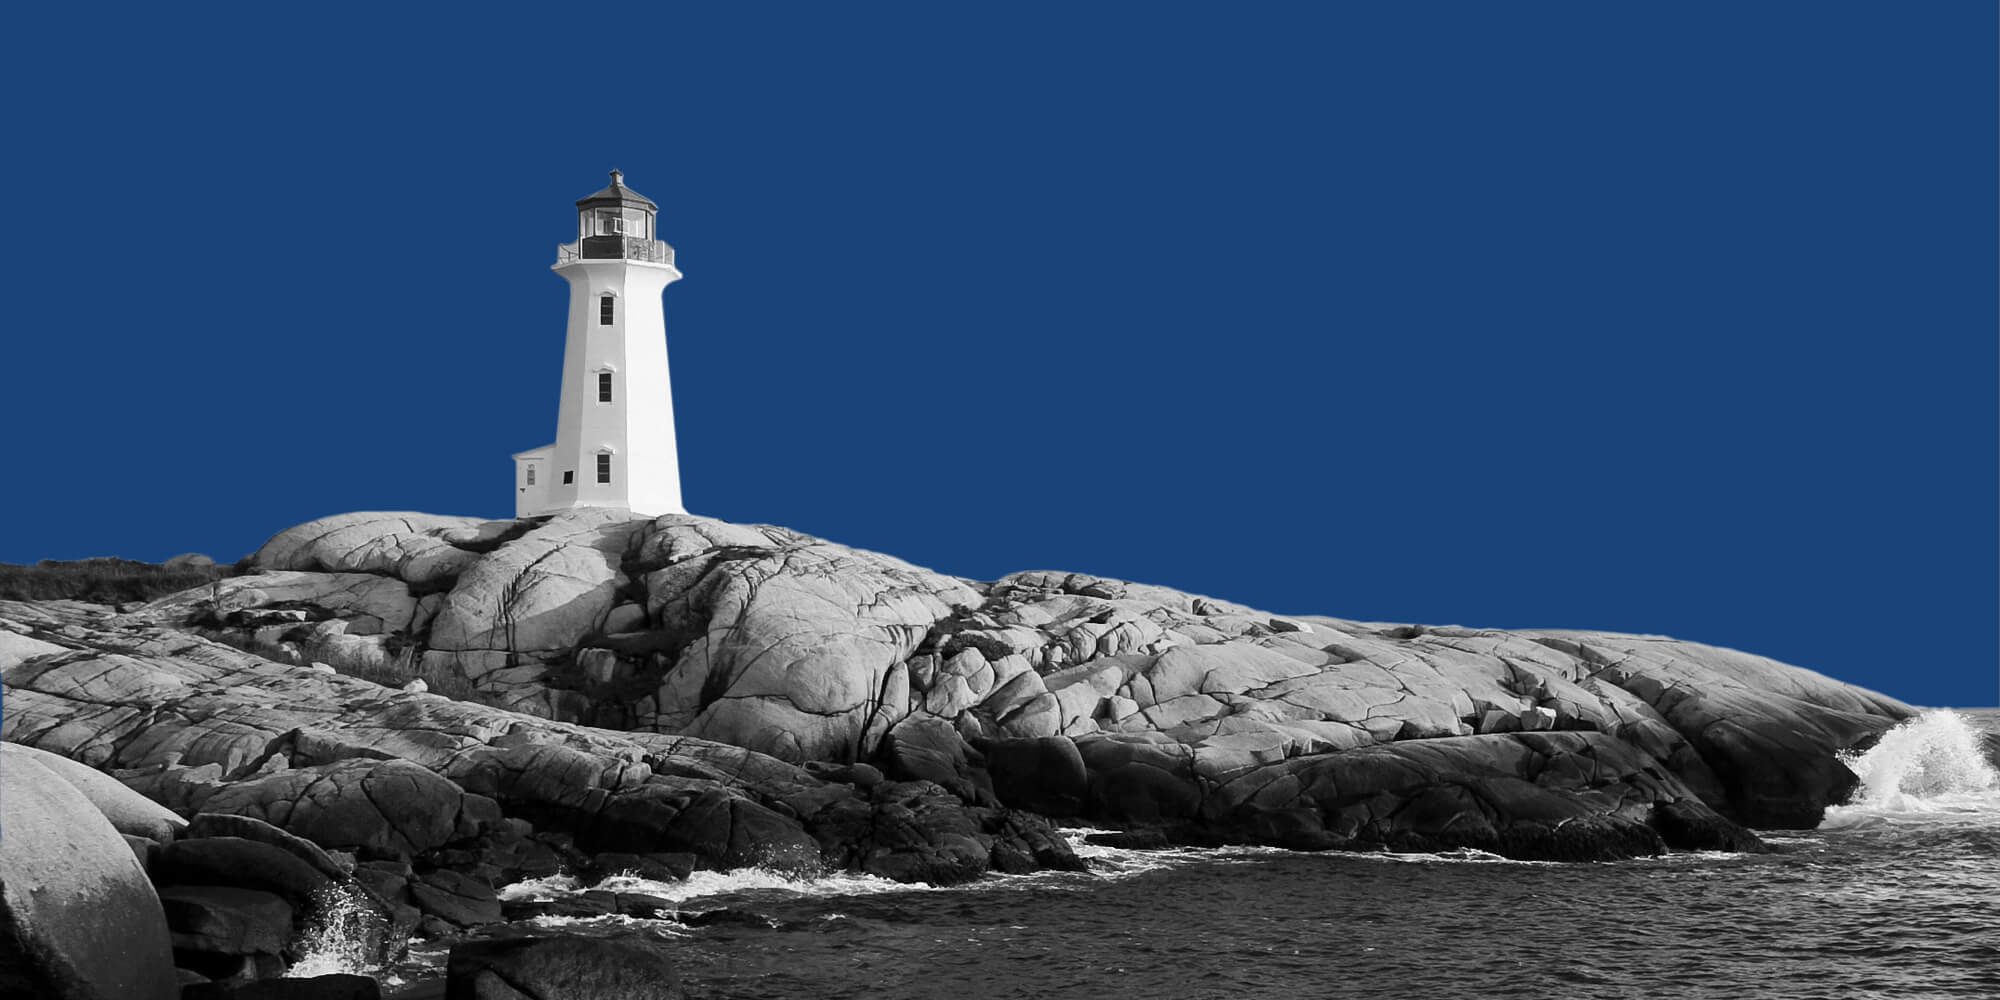 A lighthouse on a rocky shore. Addiction conselor.